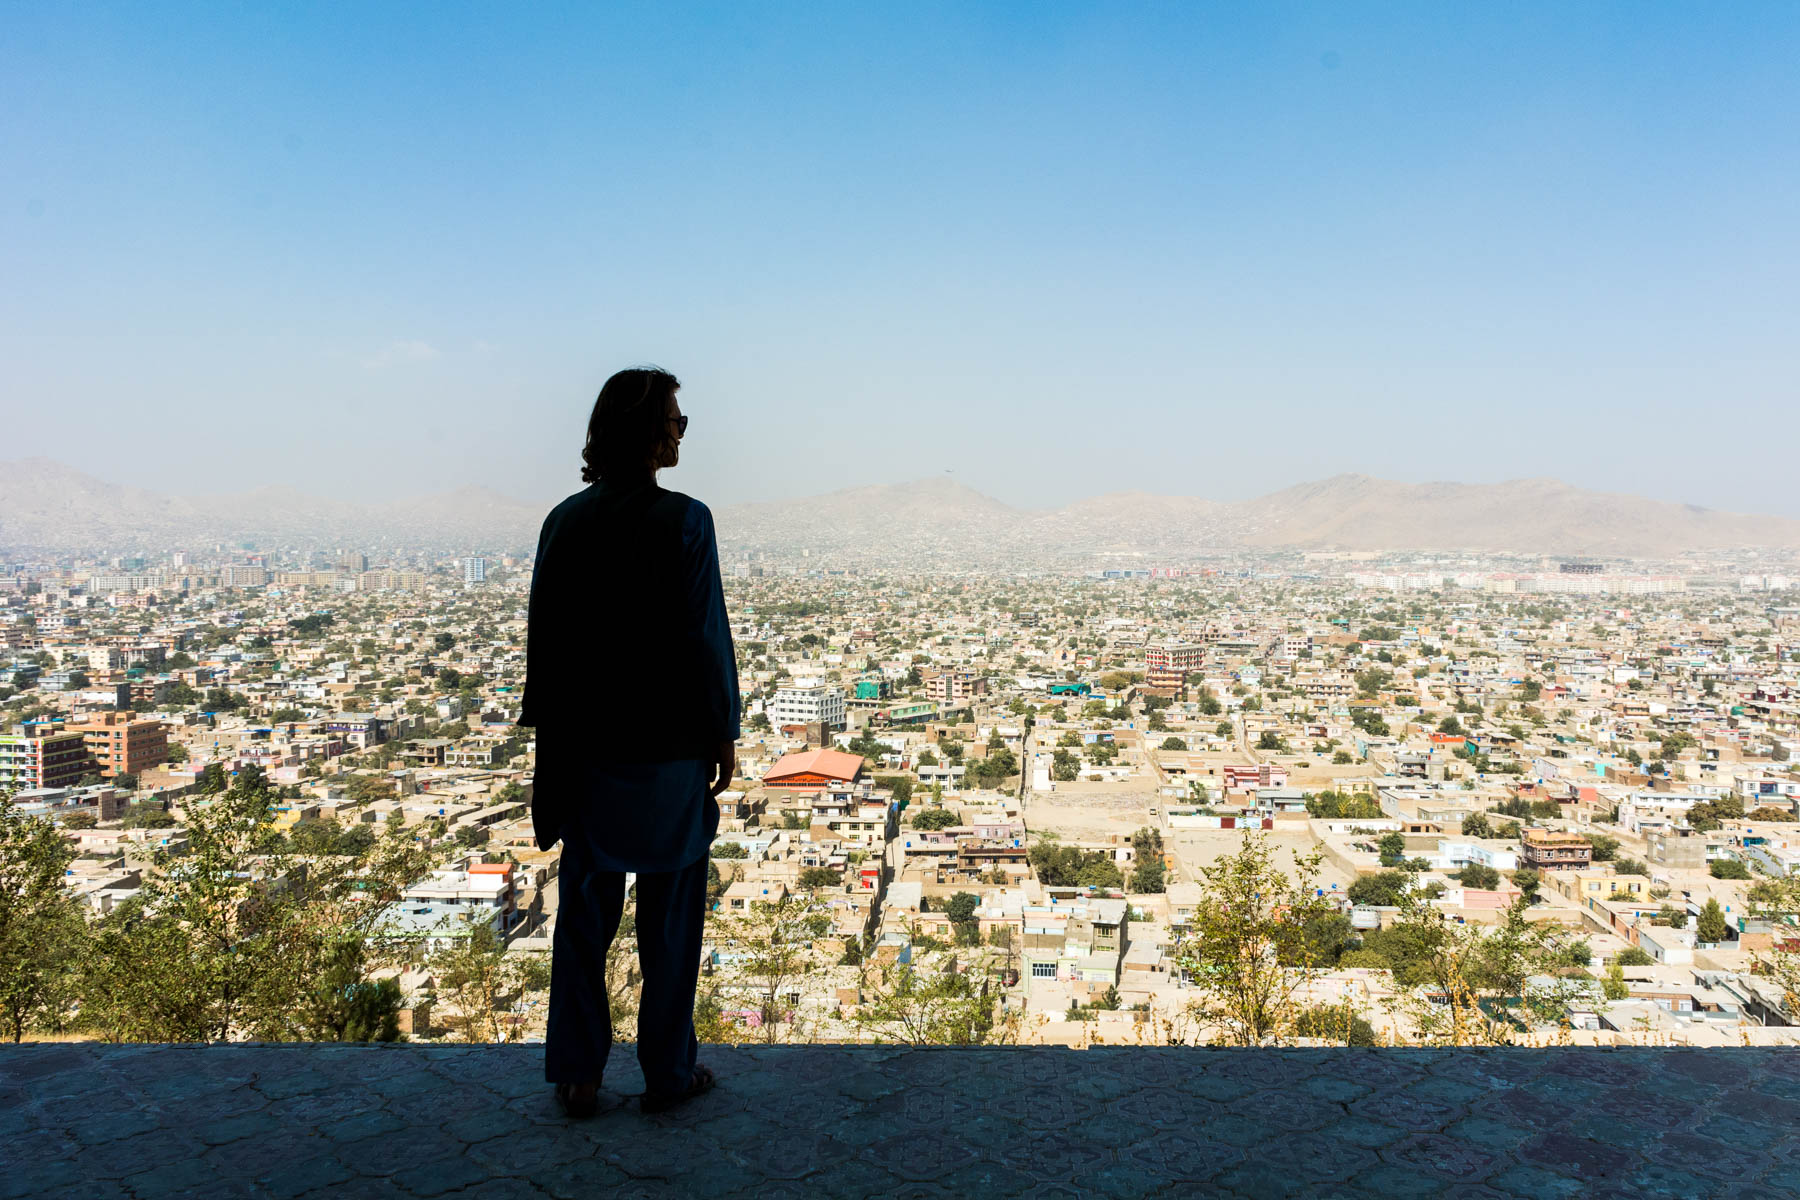 Overlooking the Kabul, Afghanistan skyline - Lost With Purpose